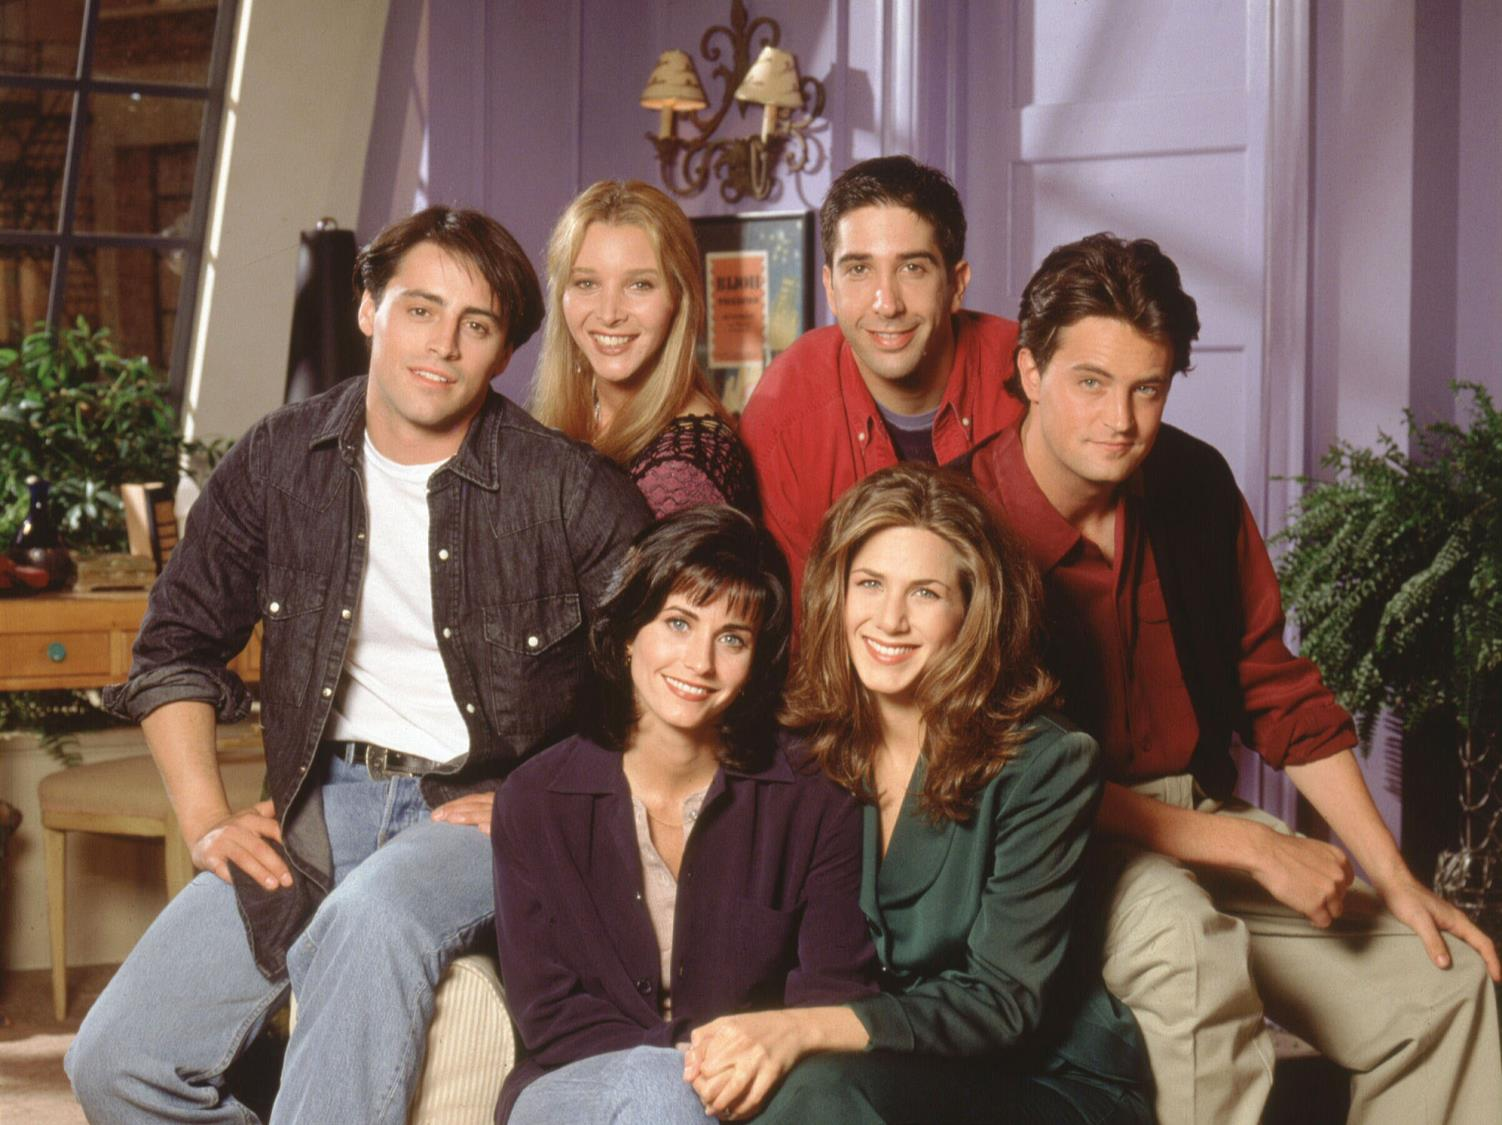 FRIENDS Is Friends already 20 years old? YES, the first episode was aired in September 1994 and it still is one of the most popular shows of our channel world wide.